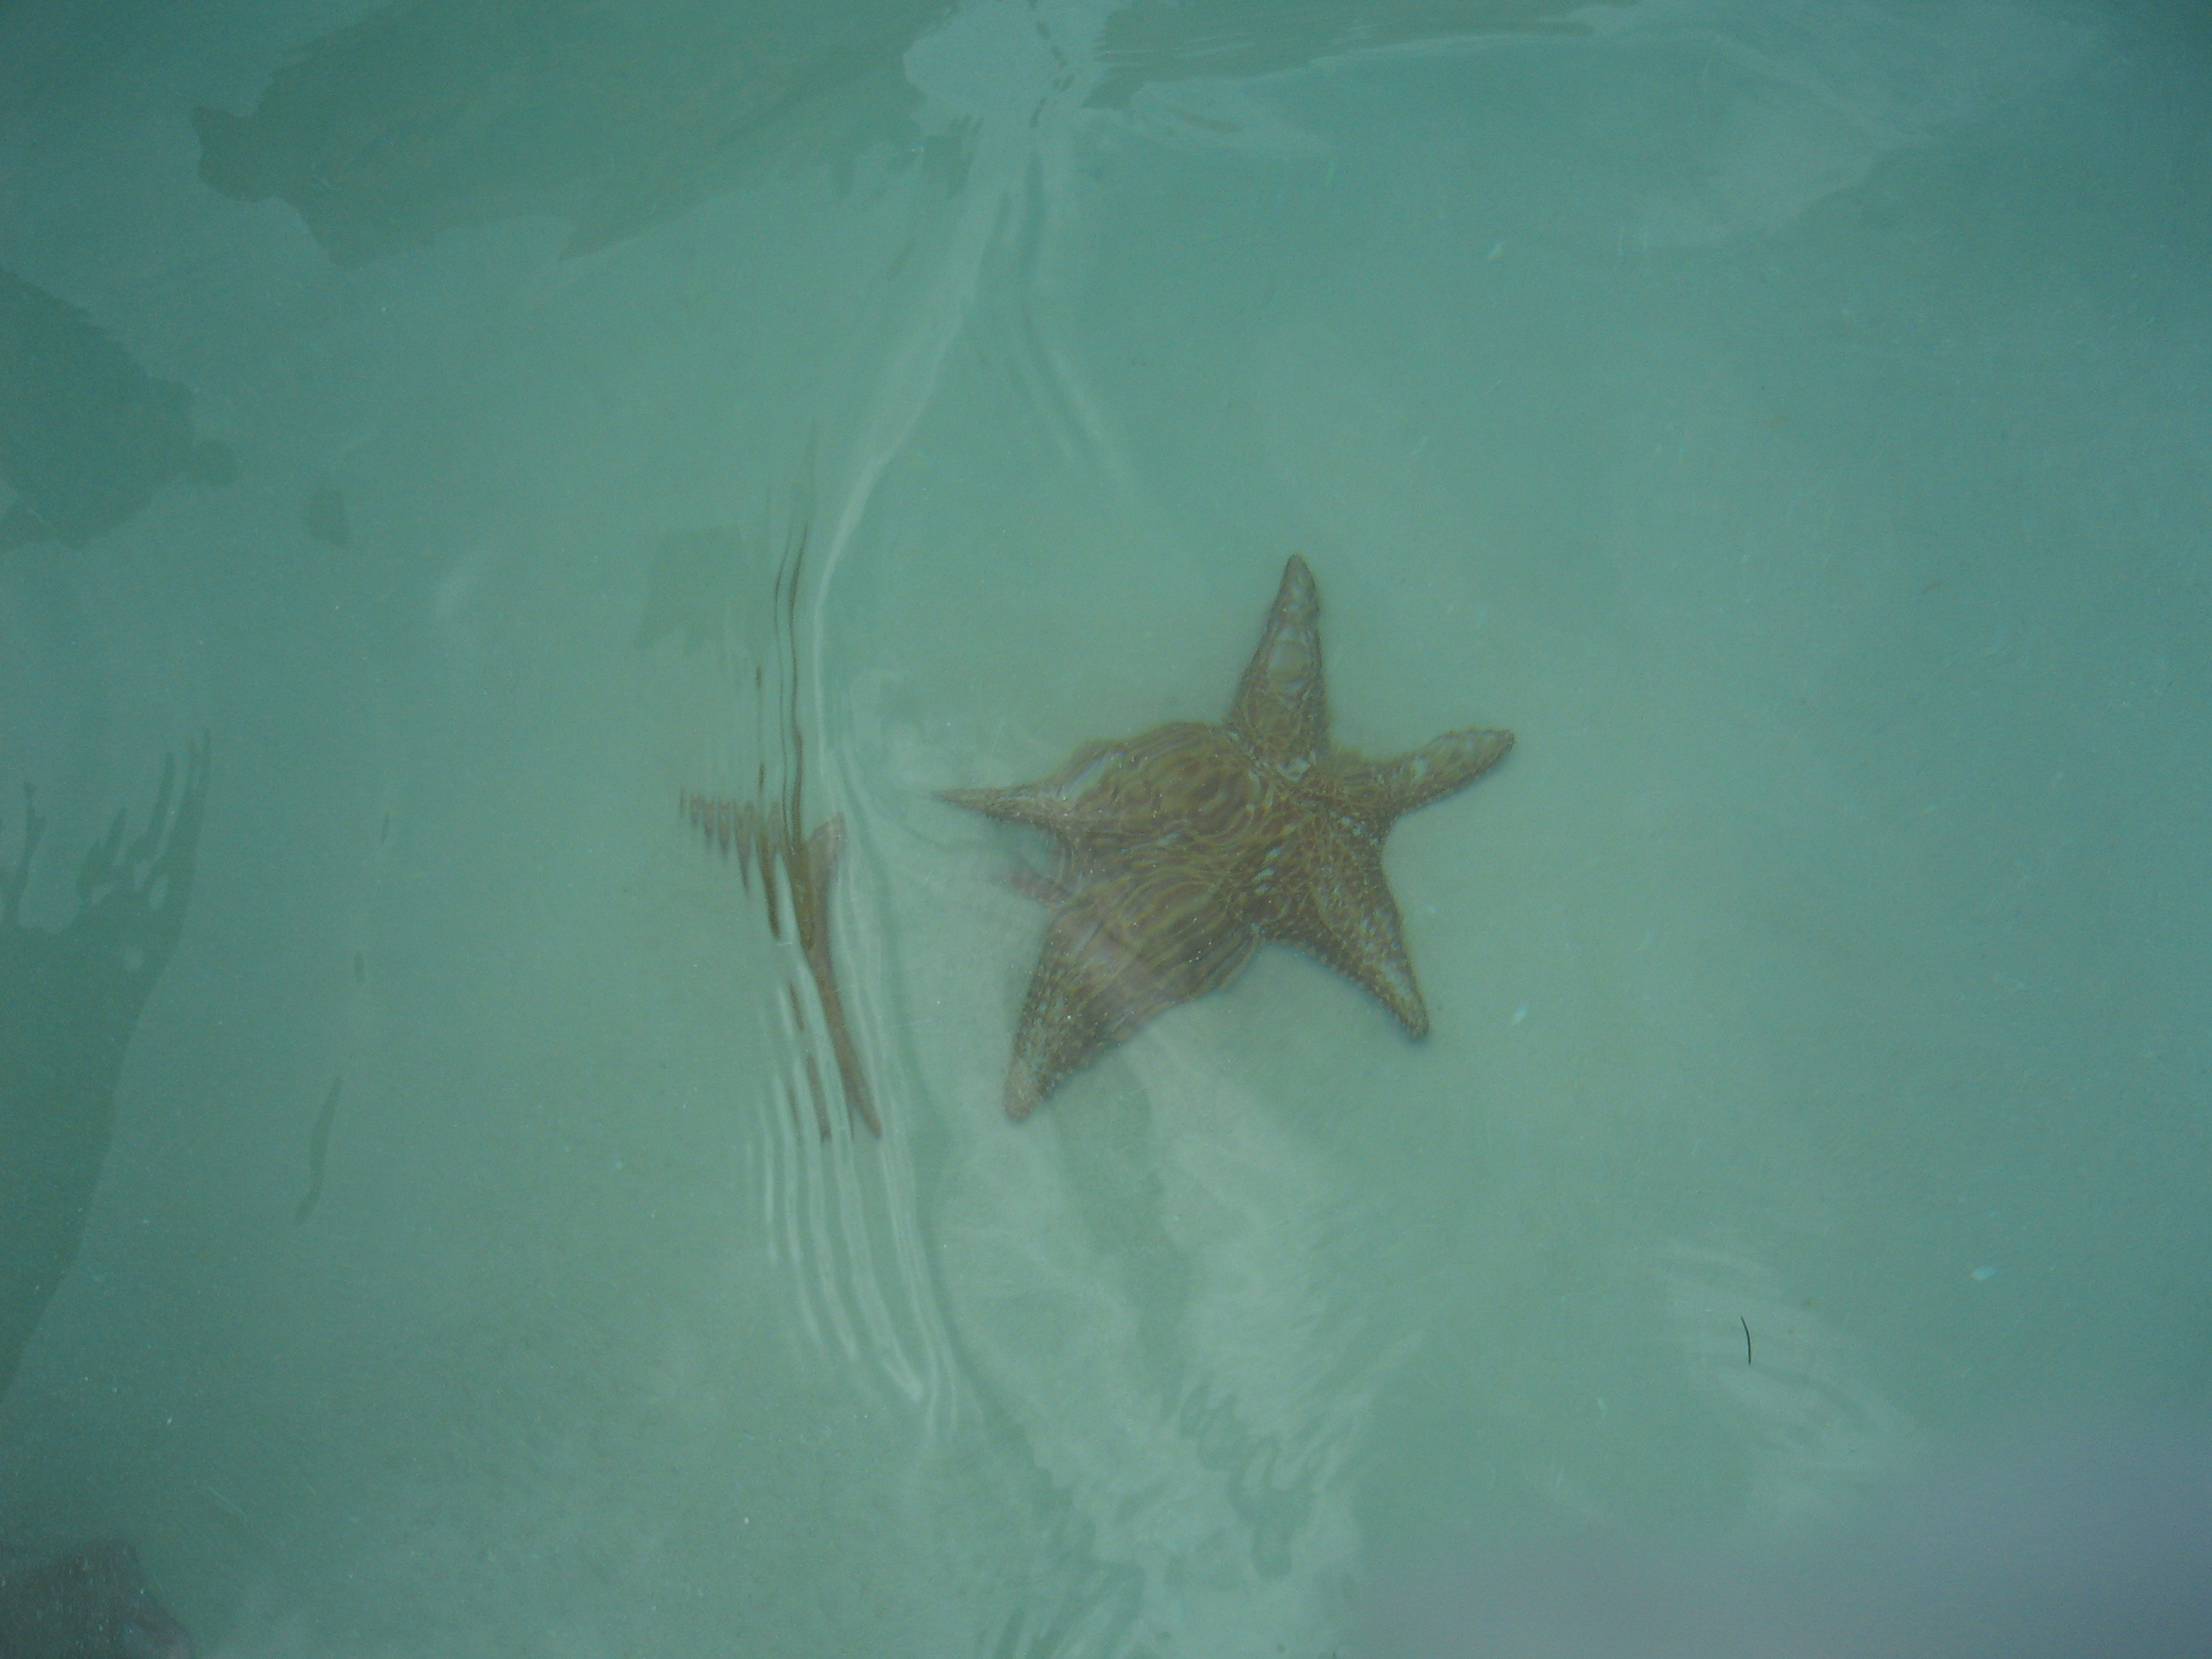 Starfish in the natural swimming pool